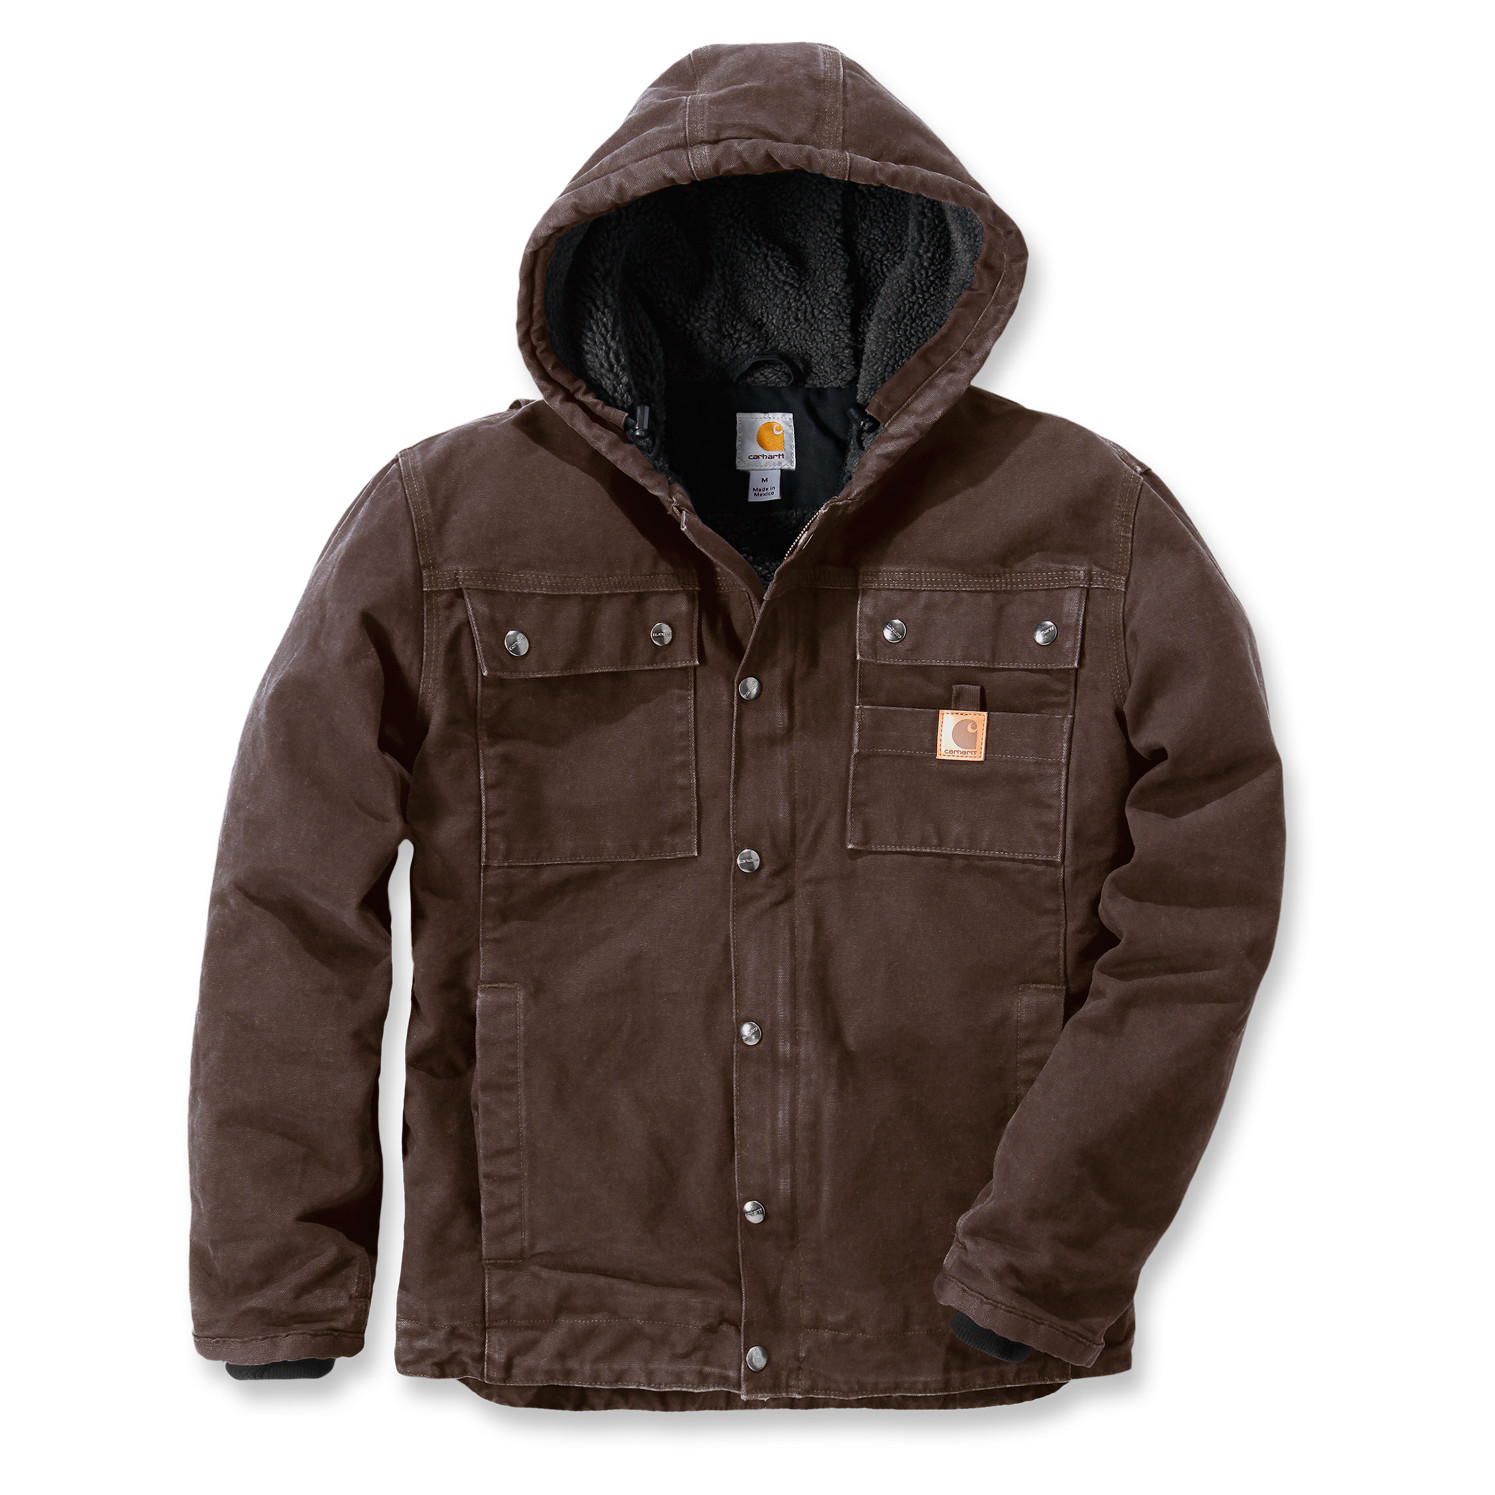 Куртка котоновая Carhartt Sandstone Barlett Jacket - 102285 (Dark Brown, XL)